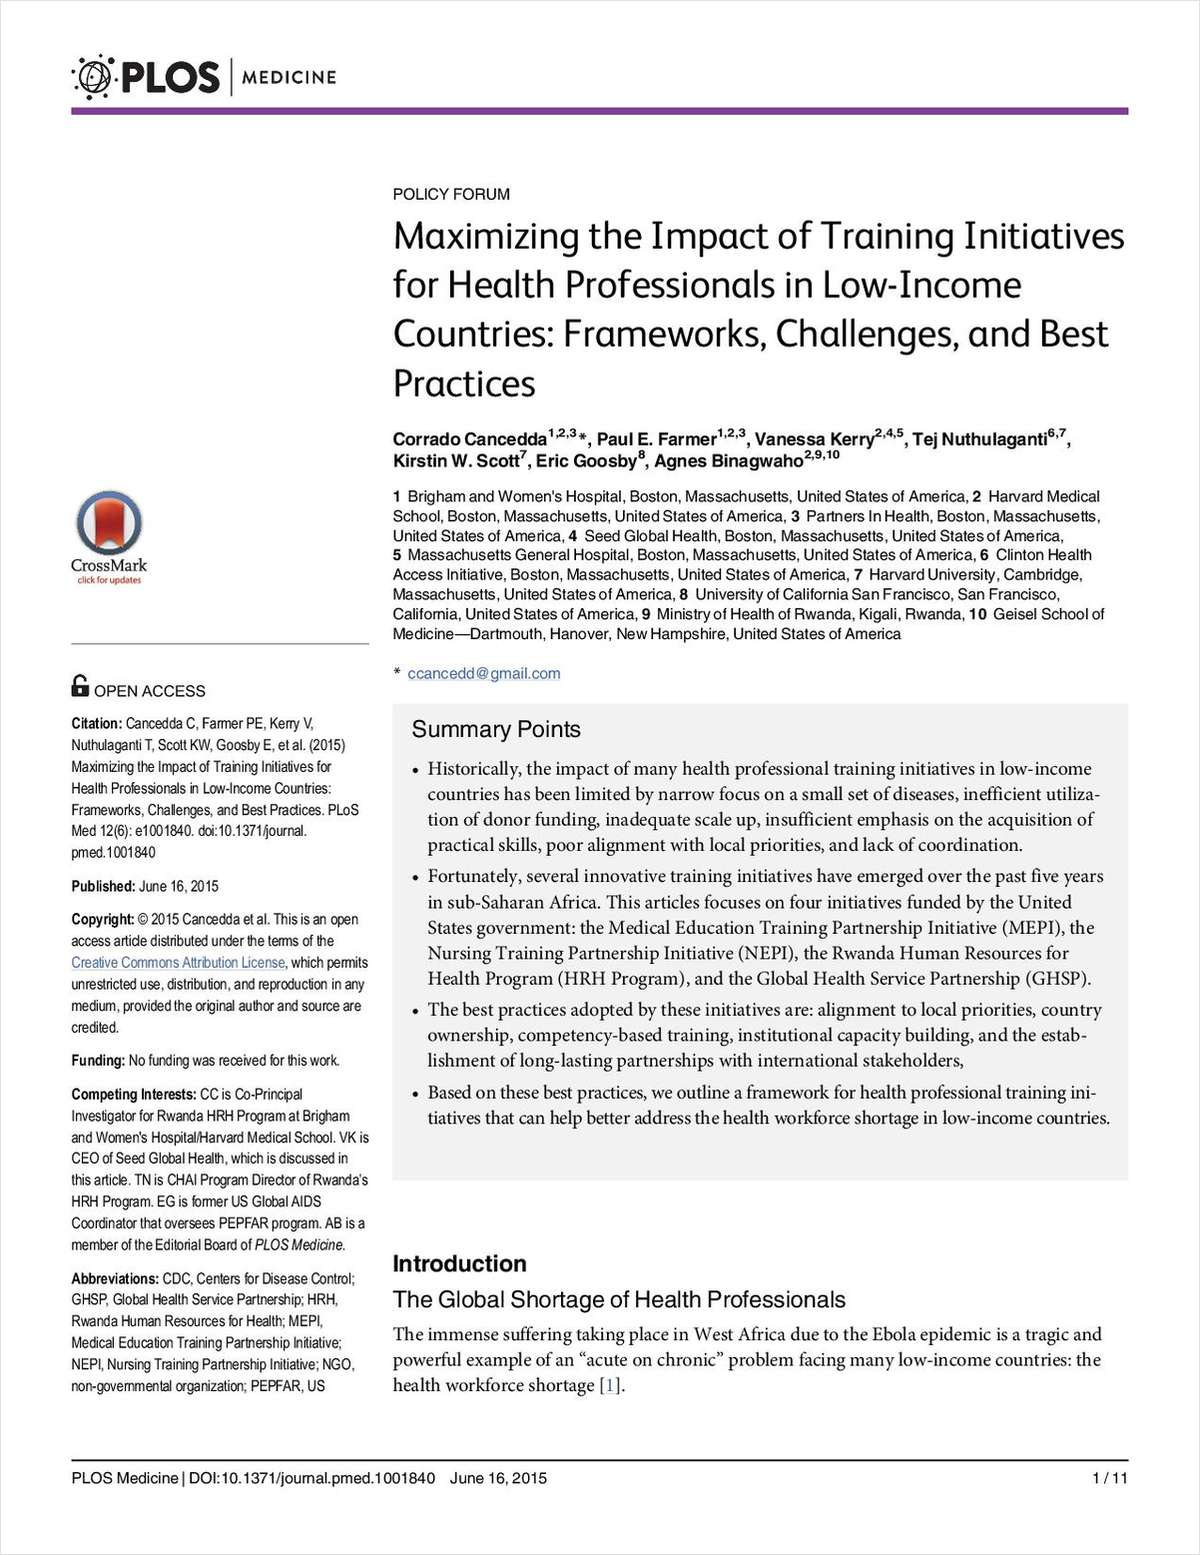 Maximizing the Impact of Training Initiatives for Health Professionals in Low-Income Countries